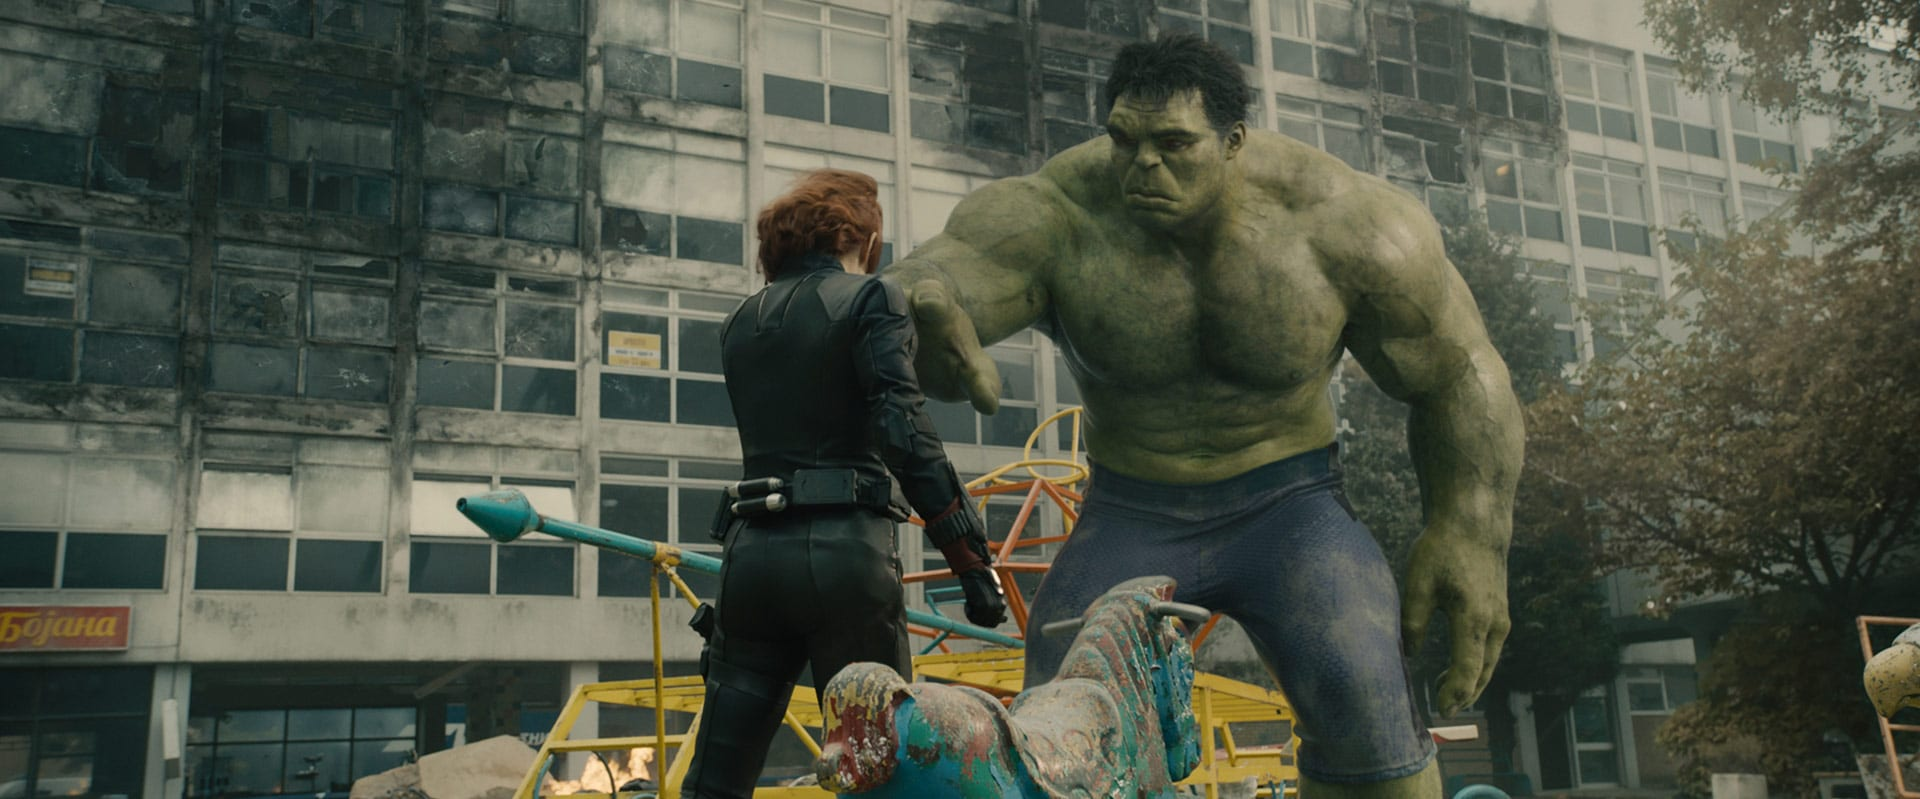 avengers-age-of-ultron-stills-19